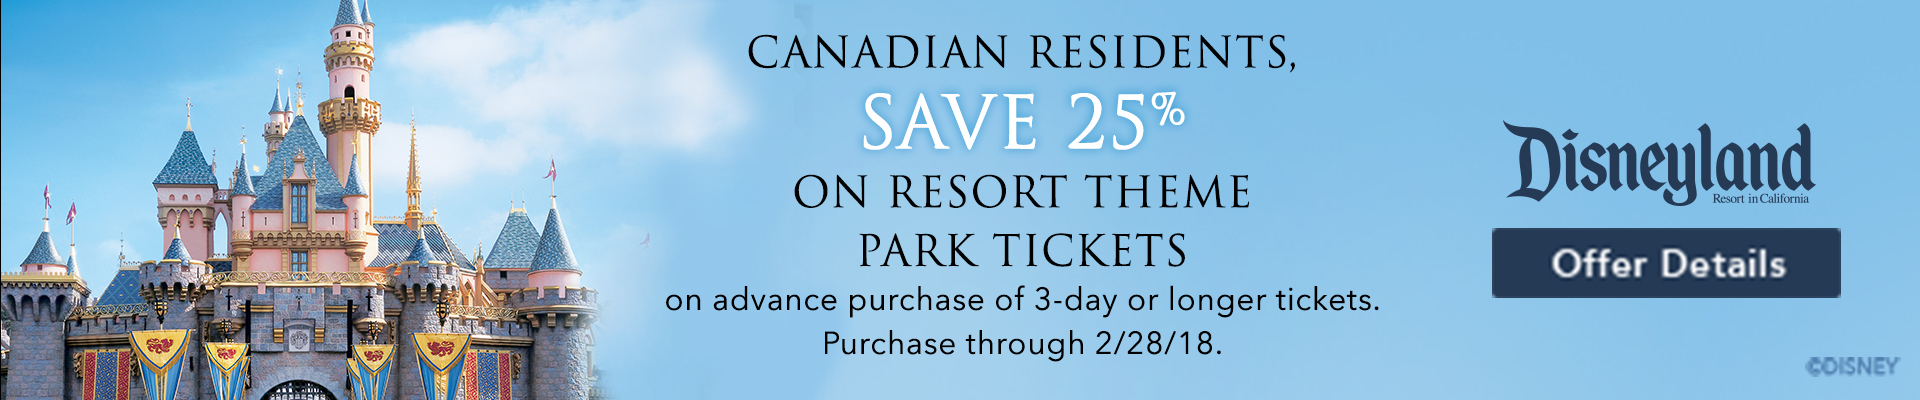 Canadian Residents Save 25% On Resort Theme Park Tickets